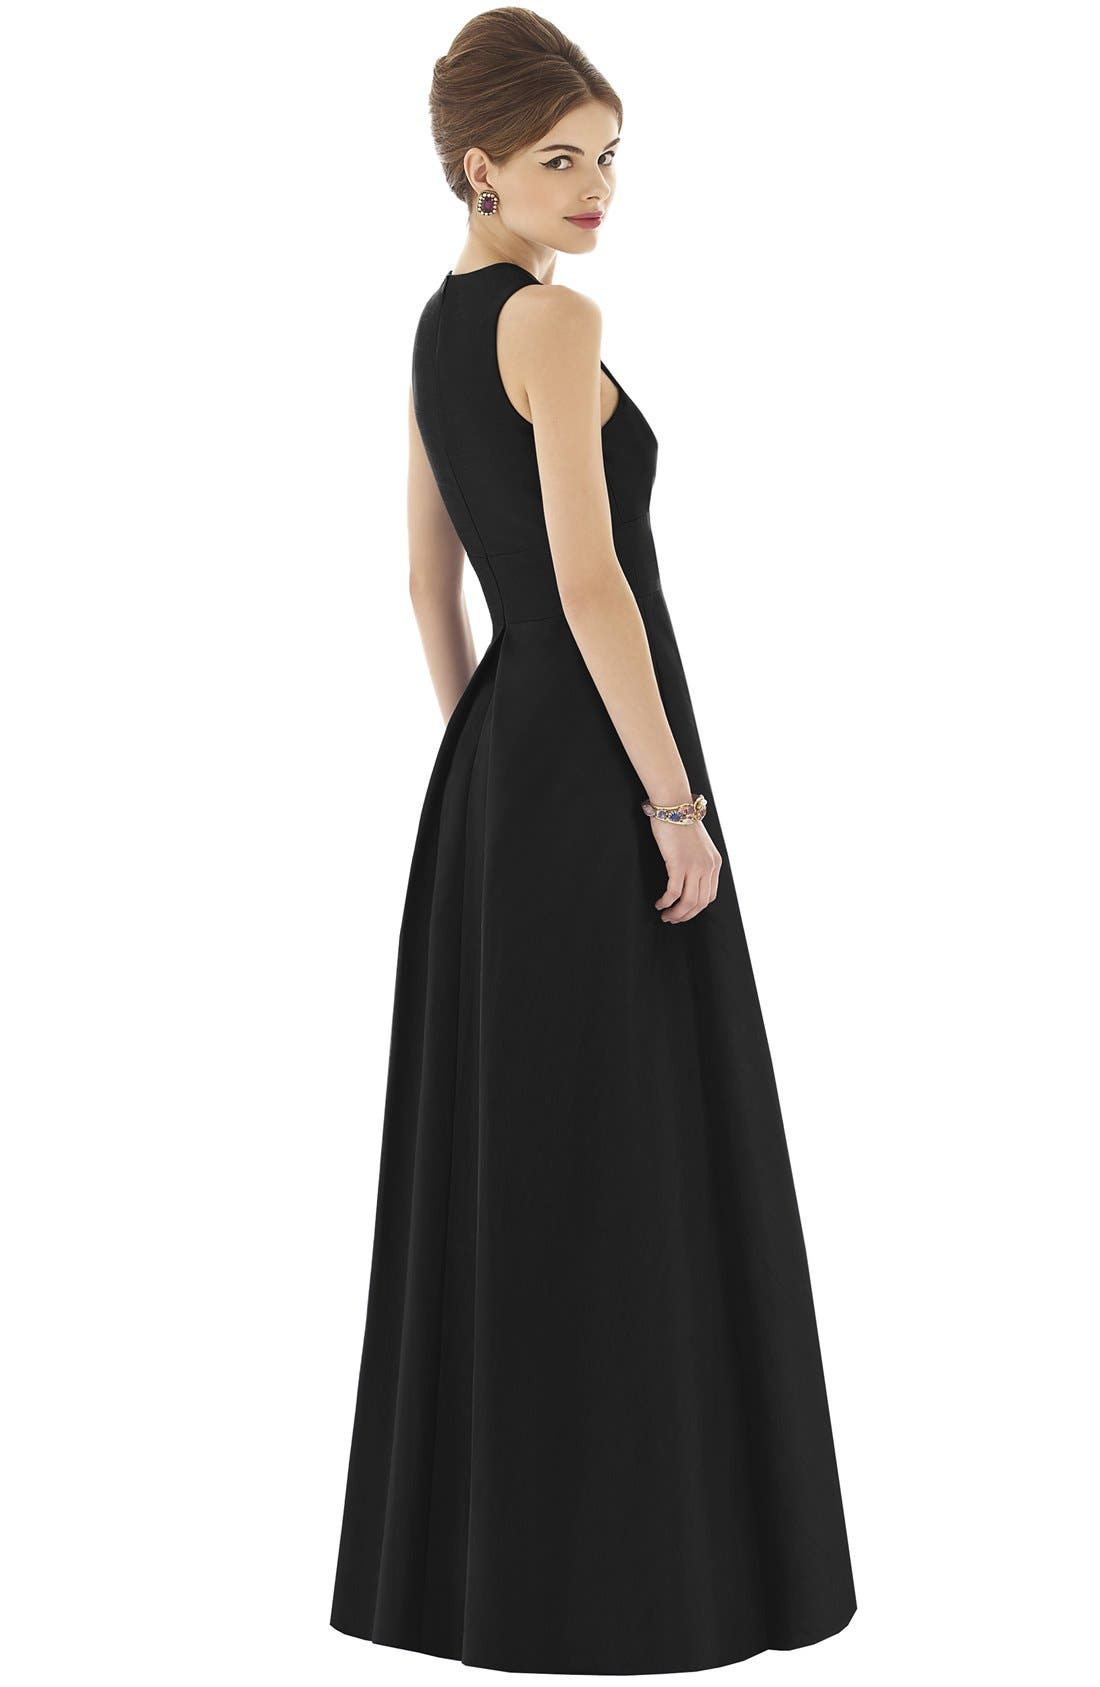 Lo lo lord and taylor party dresses - Lo Lo Lord And Taylor Party Dresses 31